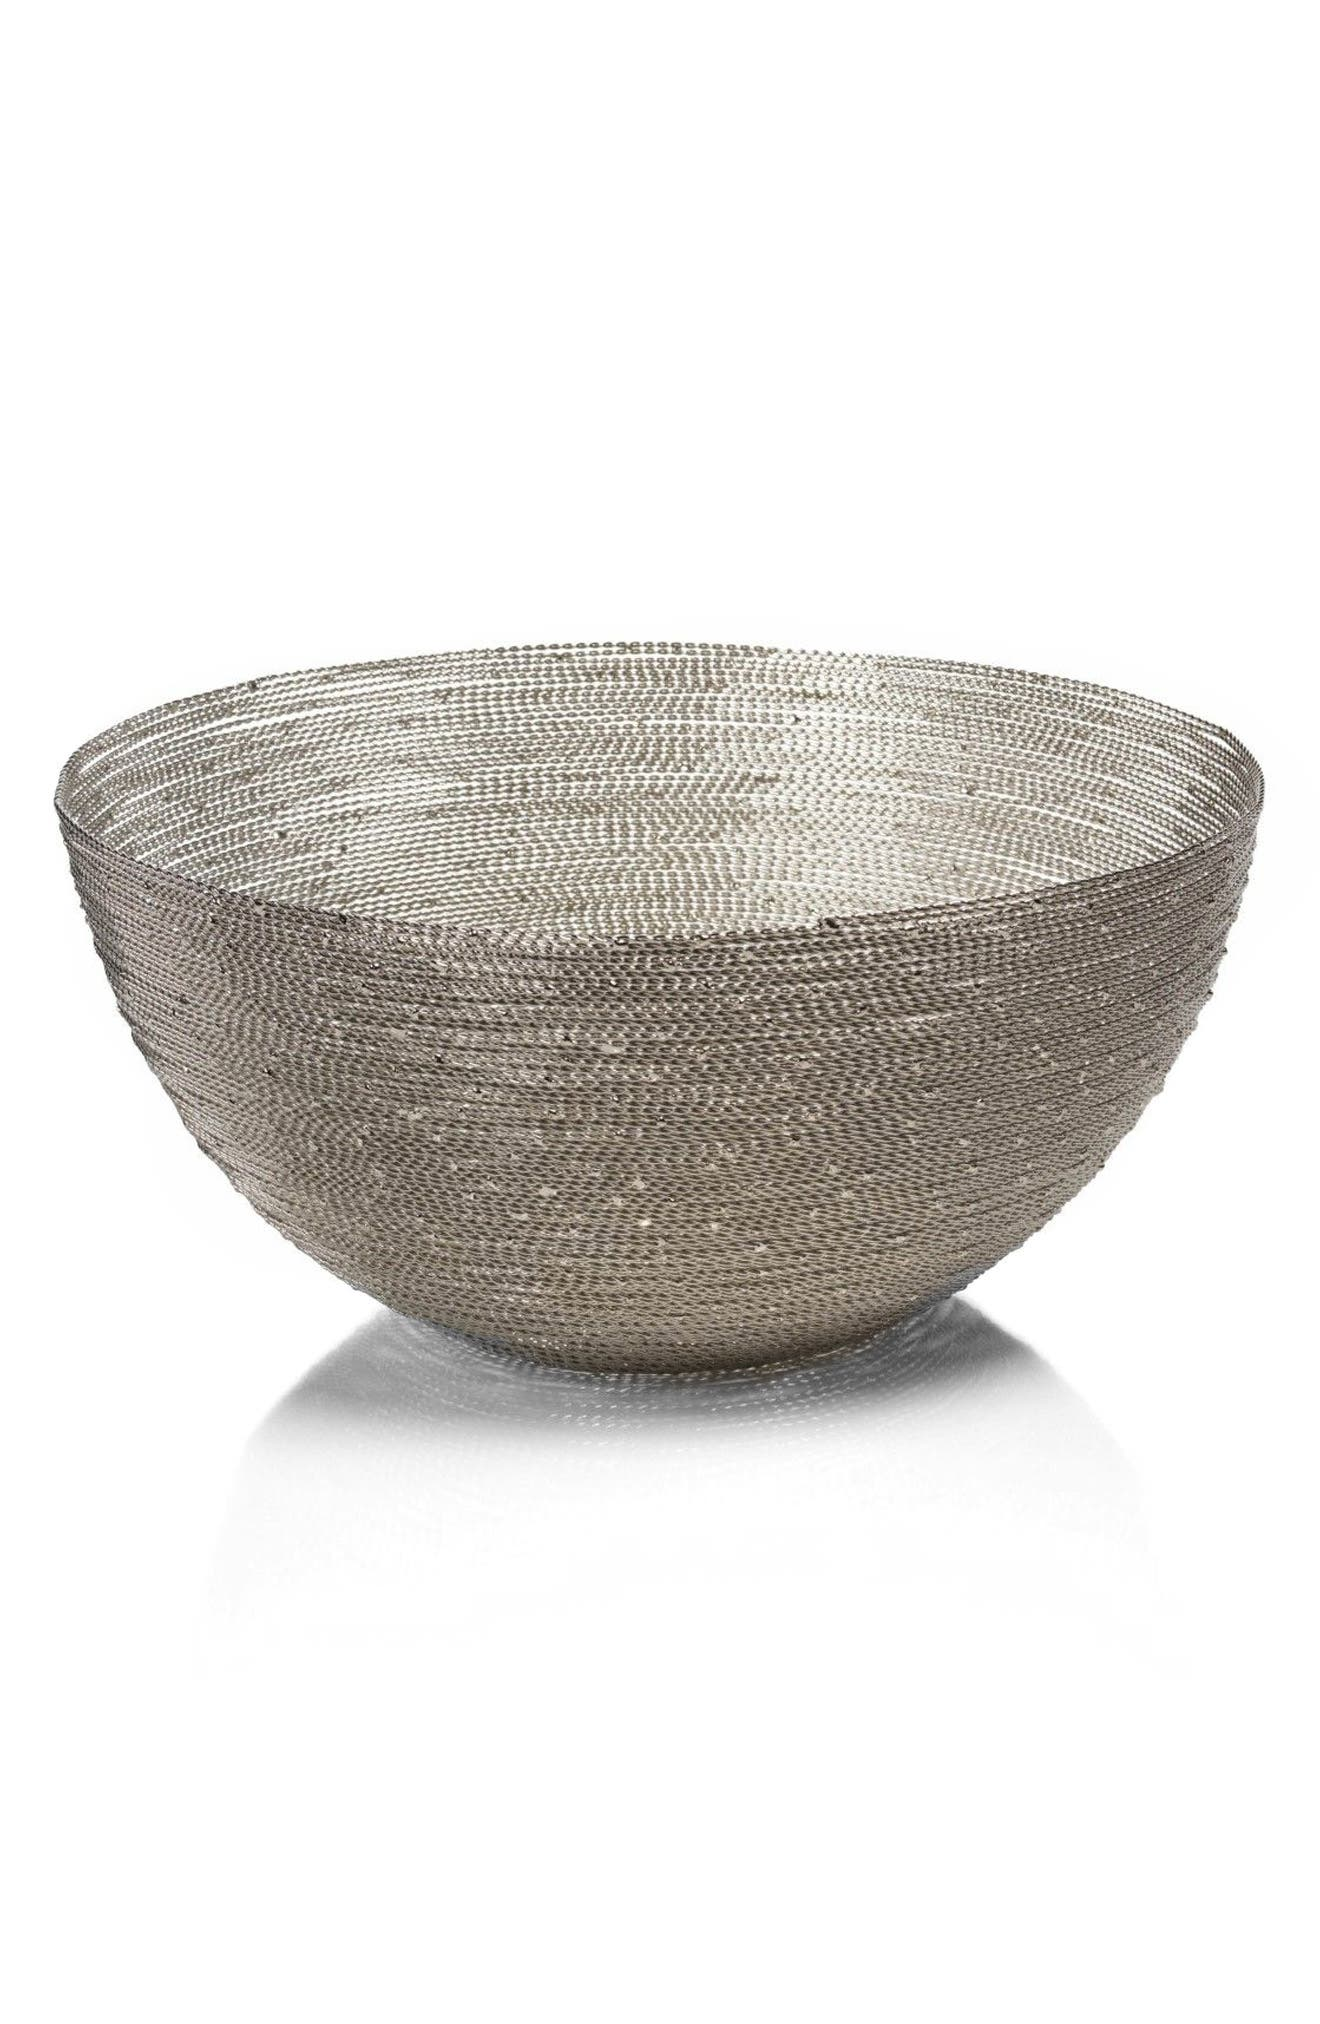 Alternate Image 1 Selected - Zodax Zulu Round Woven Wire Basket